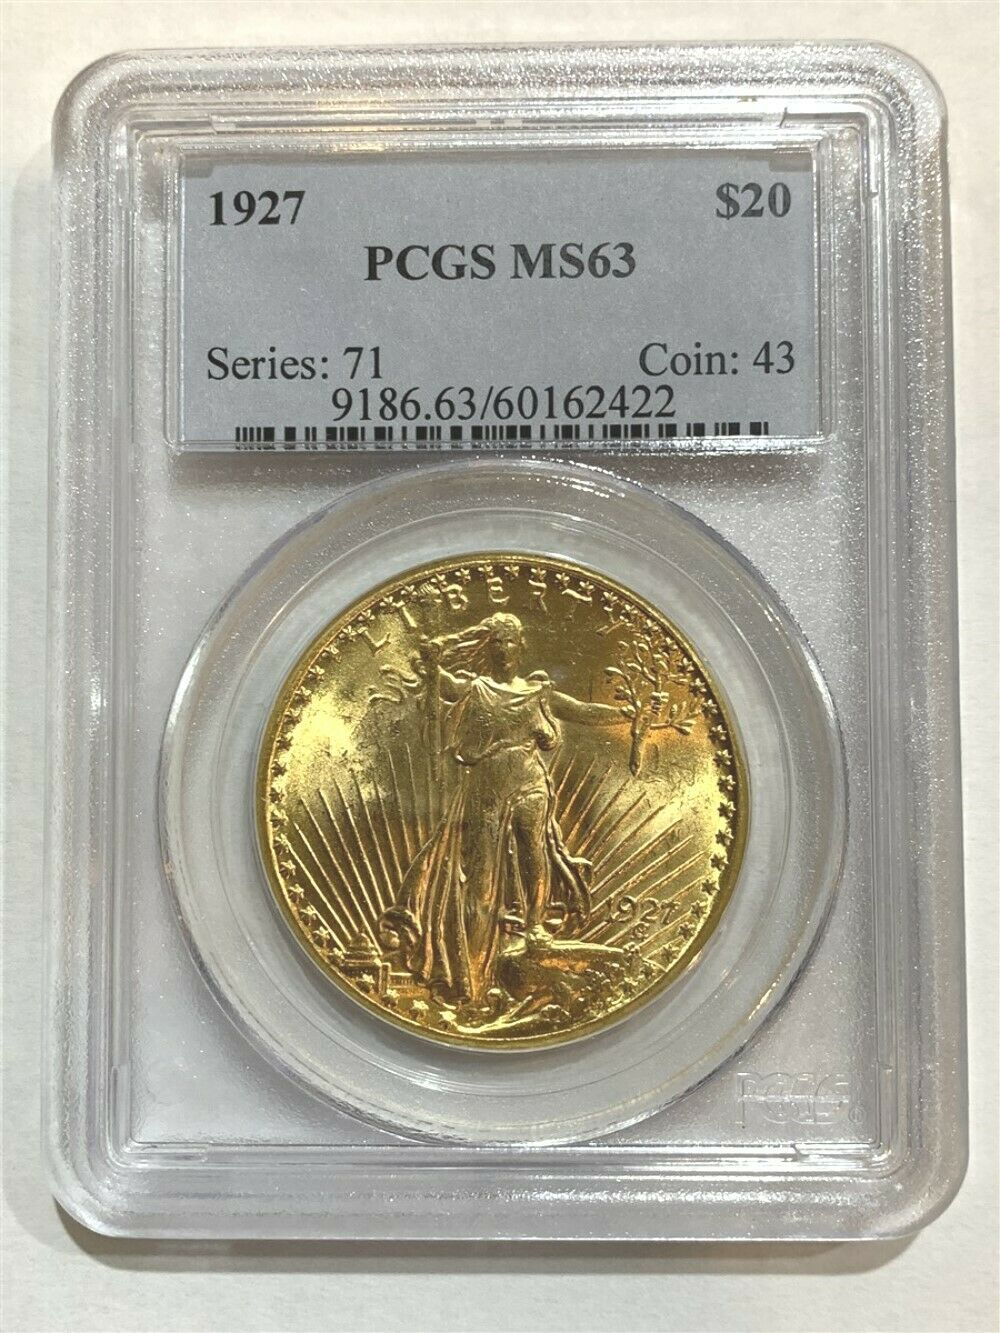 1927 $20 MS-63 PCGS Gold Double Eagle Saint Gaudens Coin